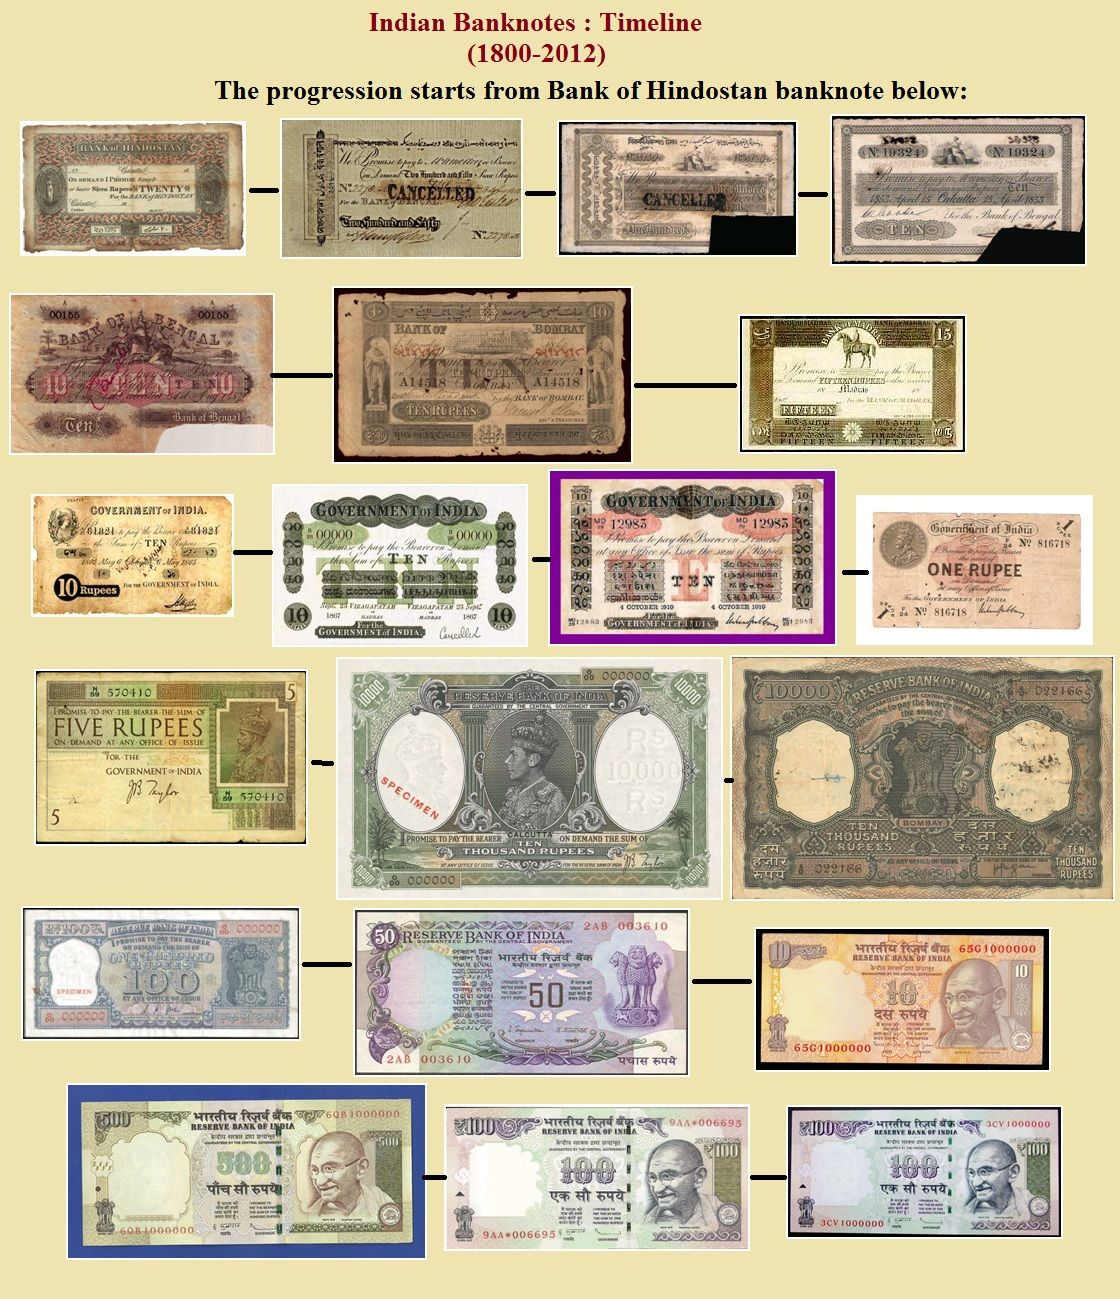 Indian Paper Money Is Known Since 1810 Used In India From Top Left To Down Bottom Traces The Timeline Of It Covers Period More Than